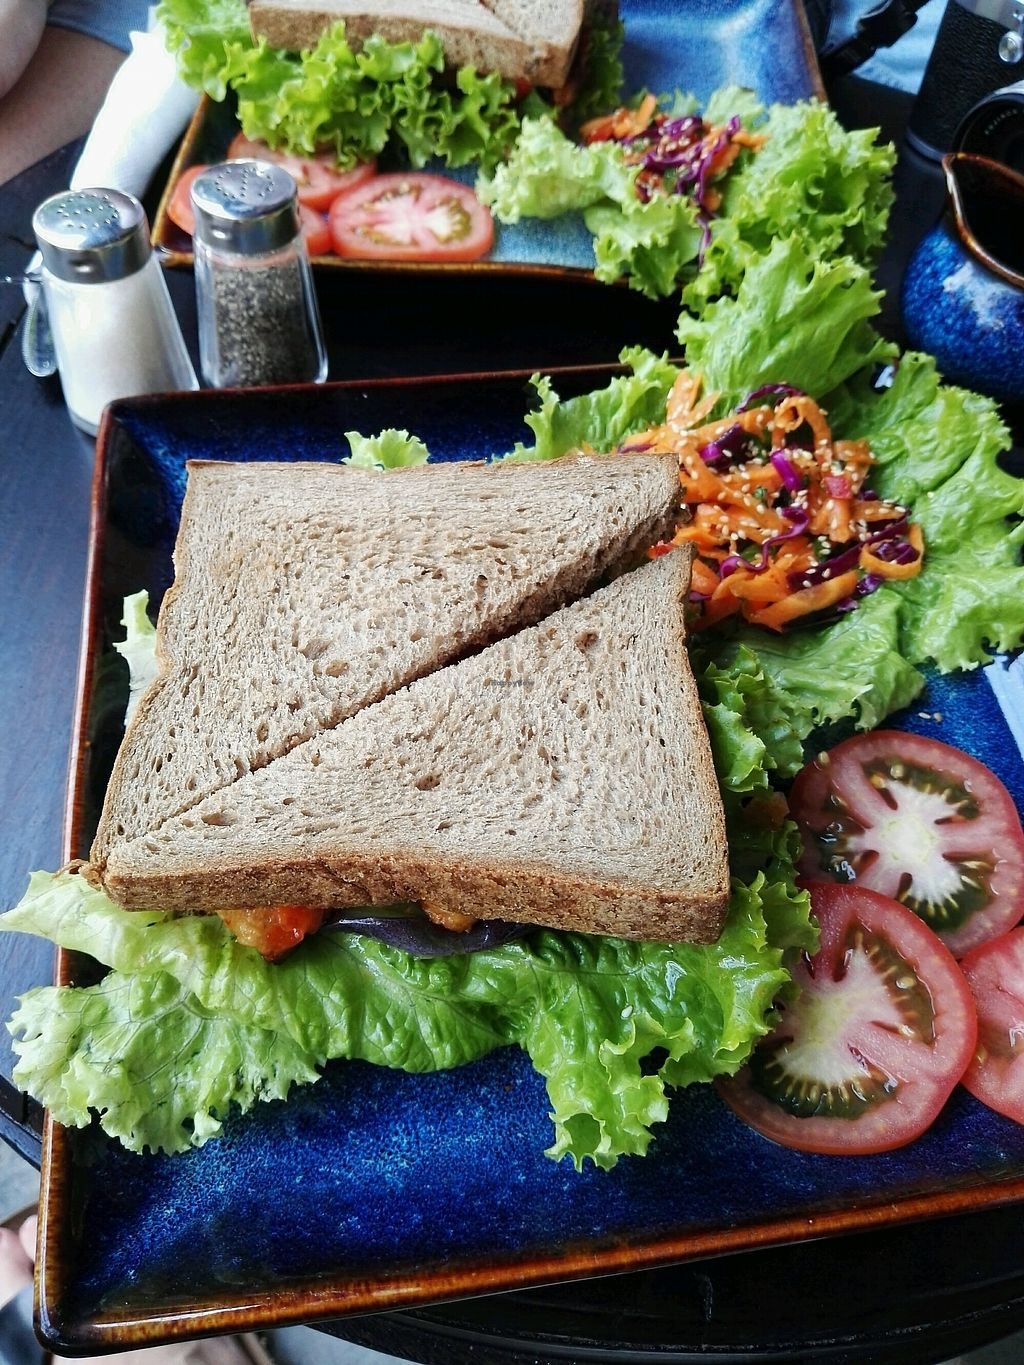 "Photo of Coco Box  by <a href=""/members/profile/evasveganlove"">evasveganlove</a> <br/>Tofu Sandwich <br/> February 28, 2018  - <a href='/contact/abuse/image/55435/364861'>Report</a>"